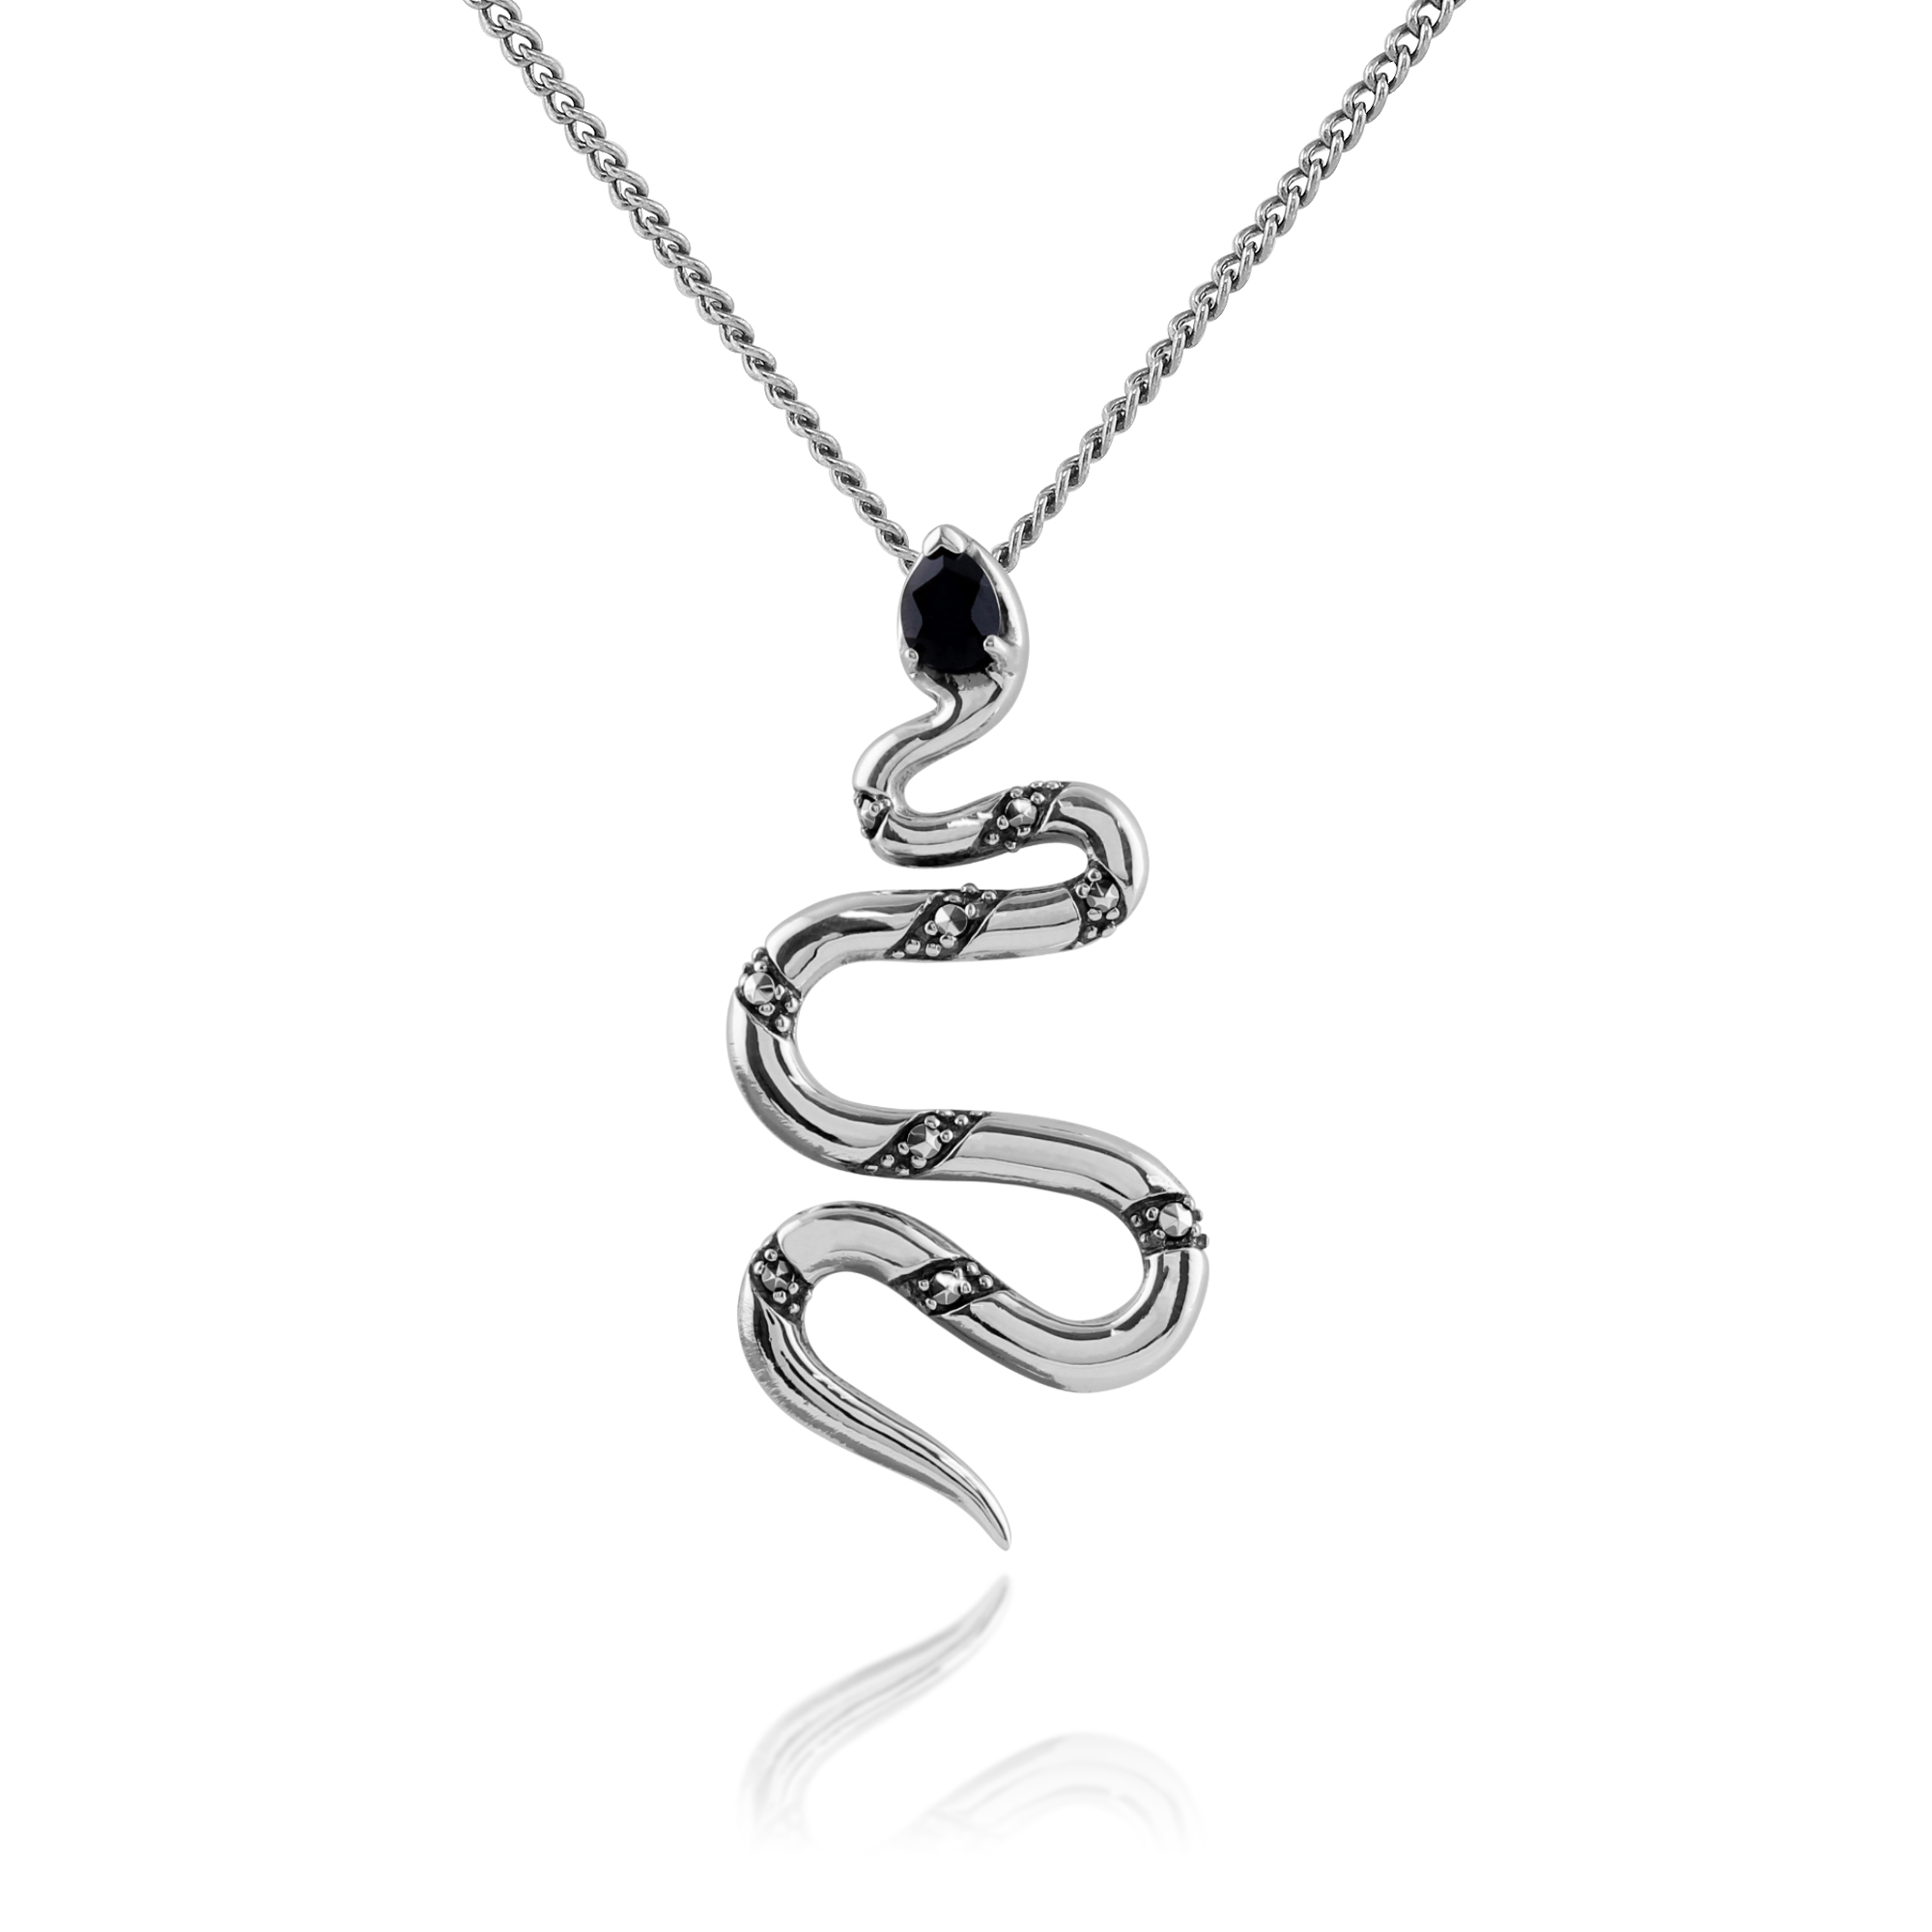 Gemondo 925 Sterling Silver 0.17ct Black Spinel & Marcasite Snake Necklace